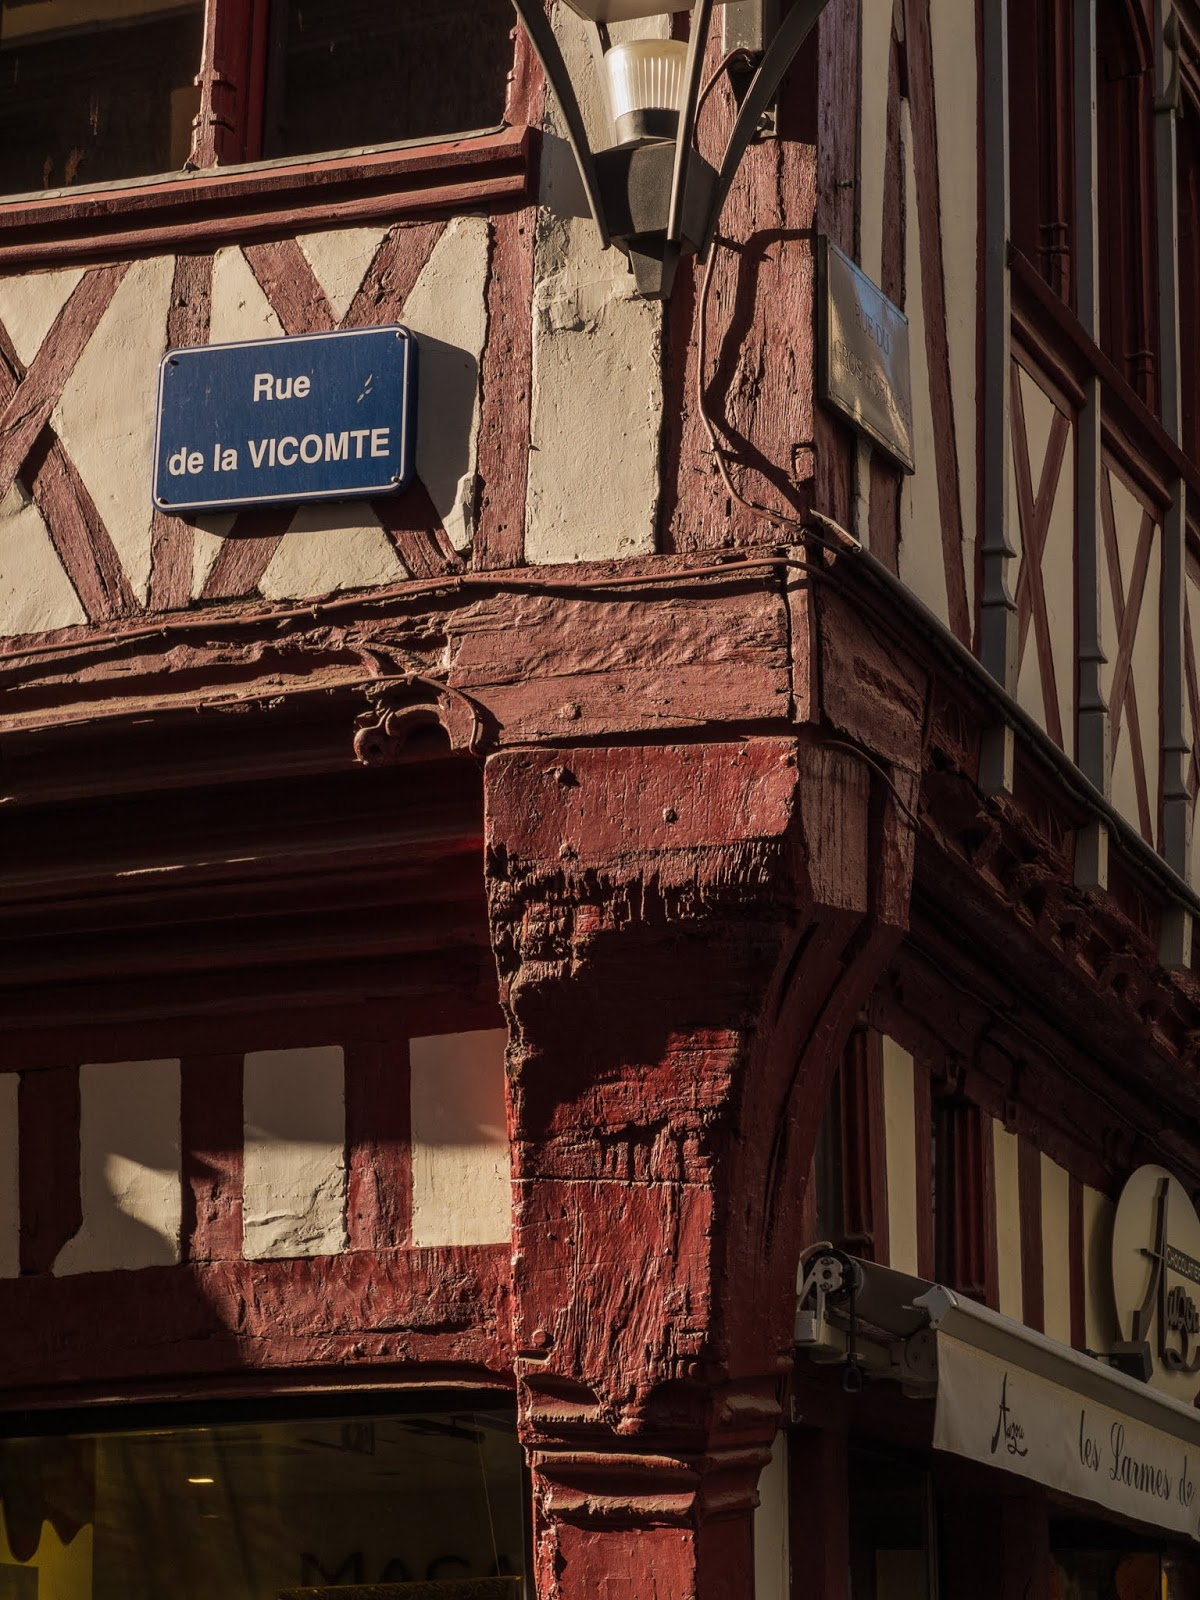 Street sign for Rue de la Vicomte in Rouen, Normandy.